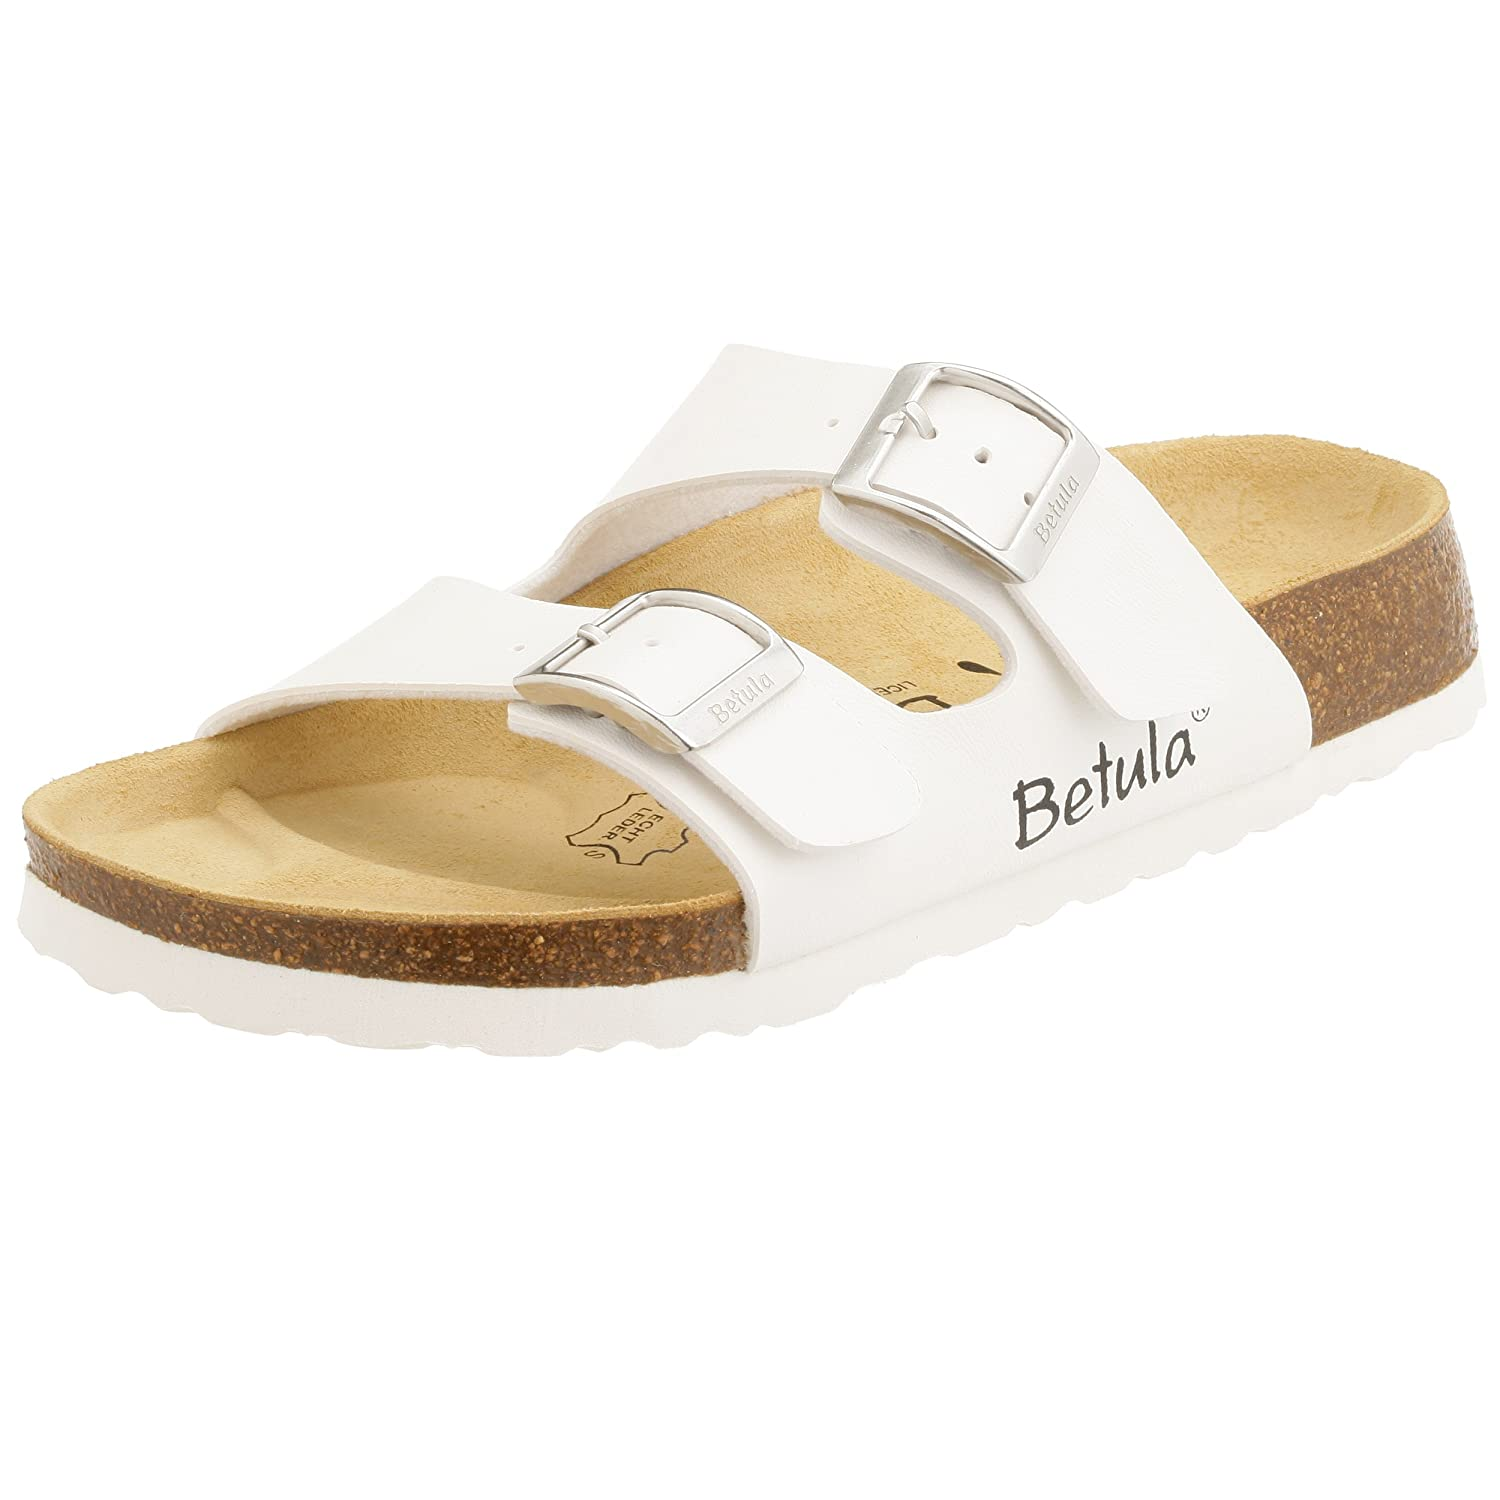 4c8b9b756 Betula   2-Strap   from Birko-Flor in White 39.0 EU N  Amazon.co.uk  Shoes    Bags